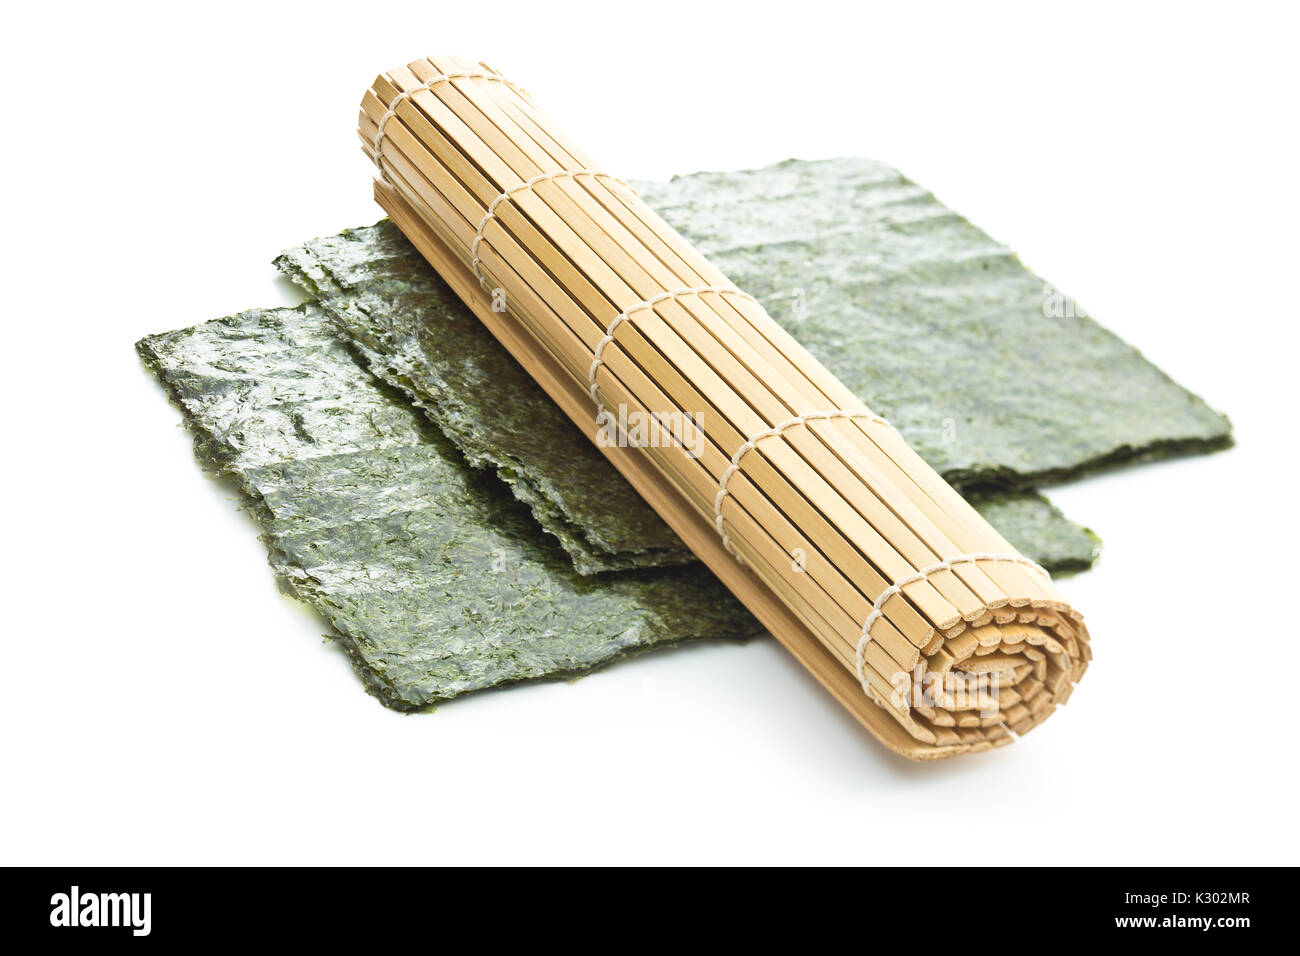 Green nori sheet and bamboo mat isolated on white background. - Stock Image